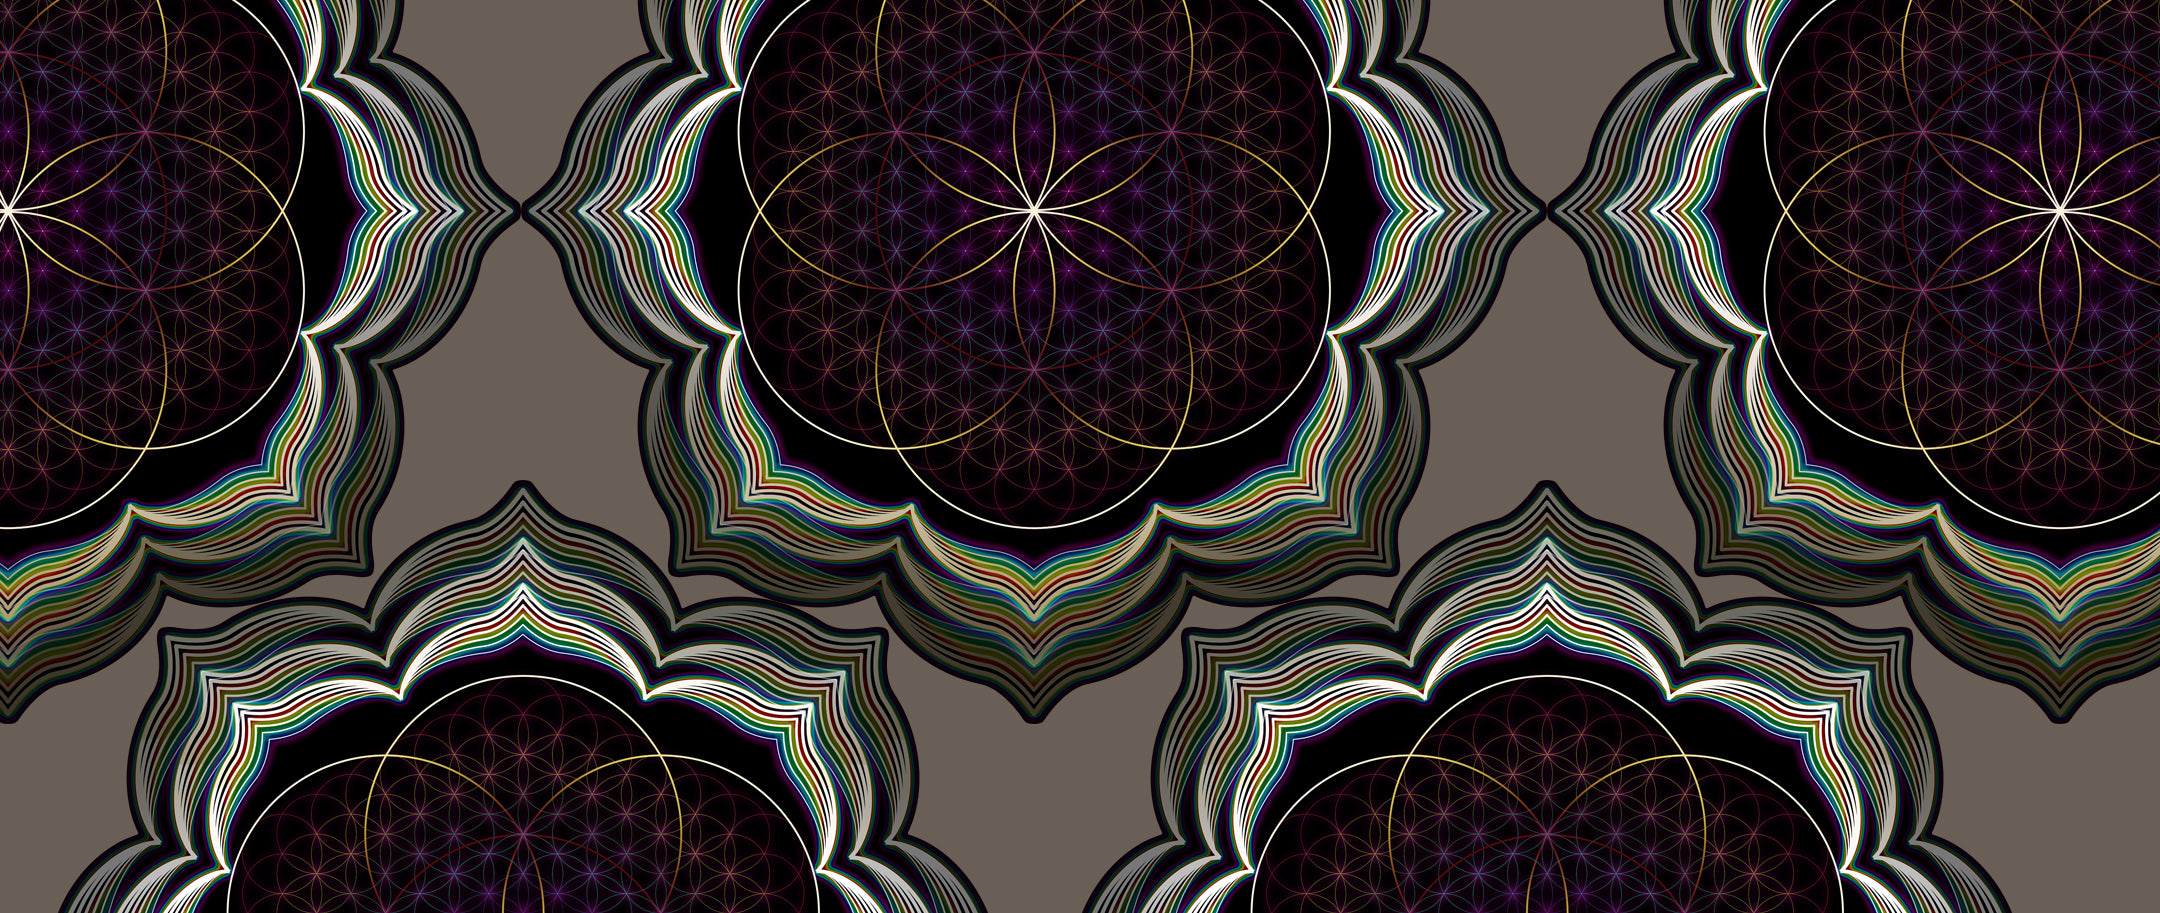 Celestial Bloom: Psychedelic Art inspired by the Sacred